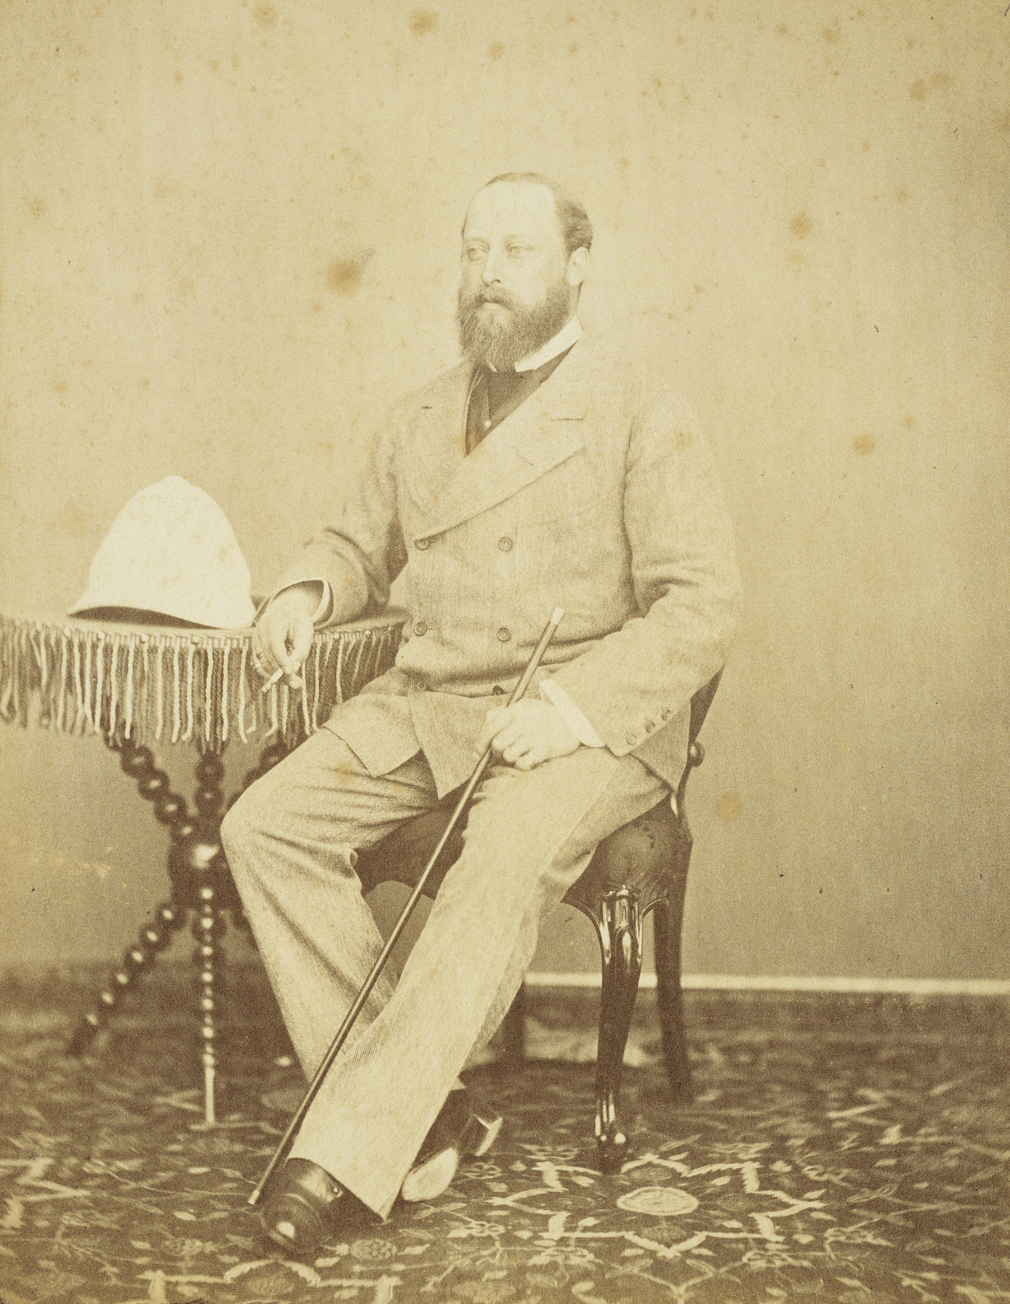 Photograph showing full length portrait of Albert Edward, Prince of Wales, seated, holding a cane in his left hand and a cigarette in his right, leaning on a small, three-legged table on which is a pith helmet. The Prince of Wales visited Jaipur in early